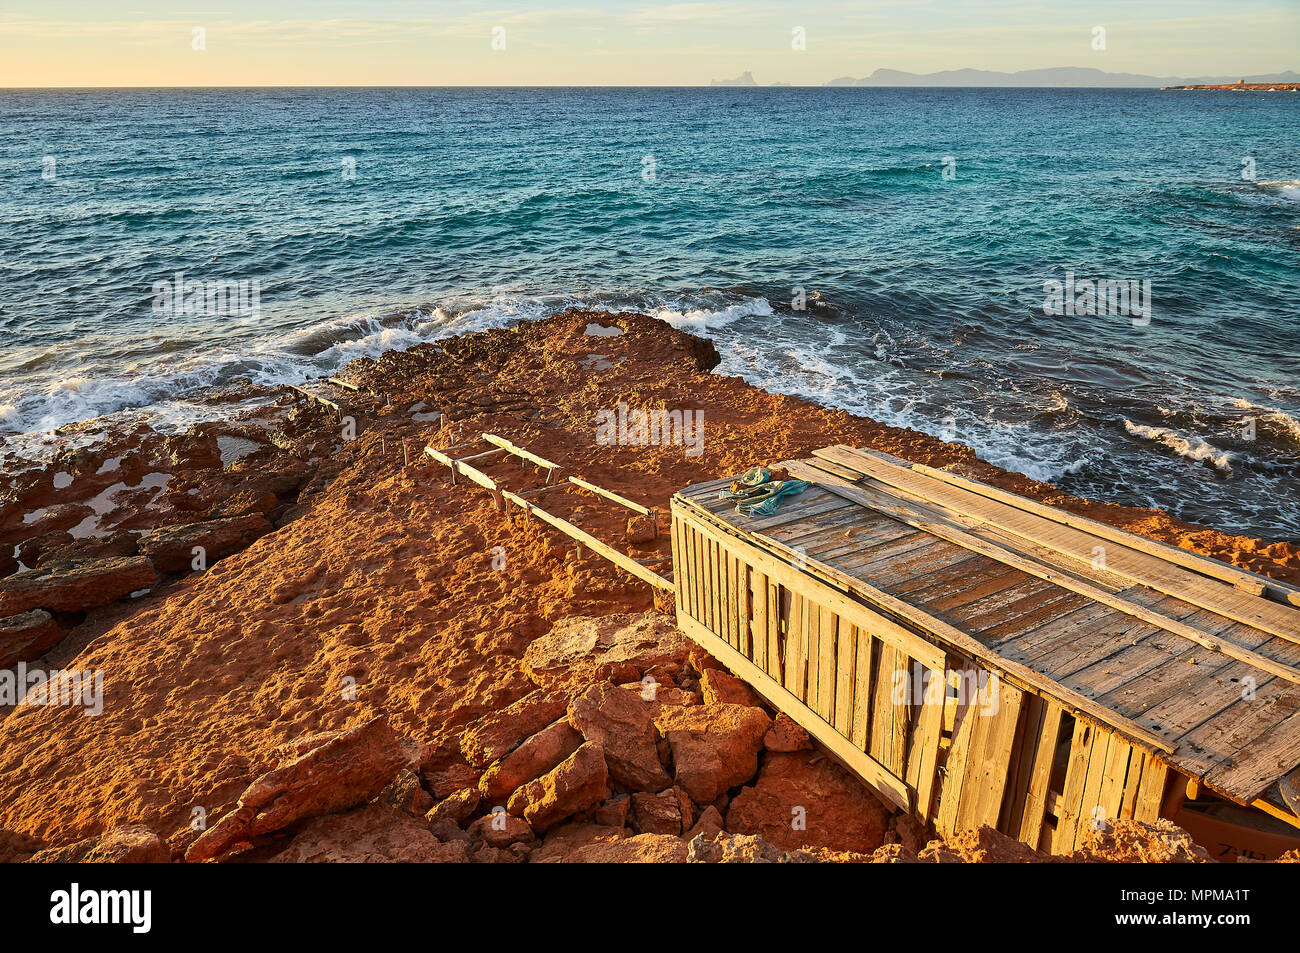 Traditional dry dock by the sea near Cala Saona with Es Vedrá islet and Ibiza island in the distance from Formentera (Balearic Islands, Spain) - Stock Image